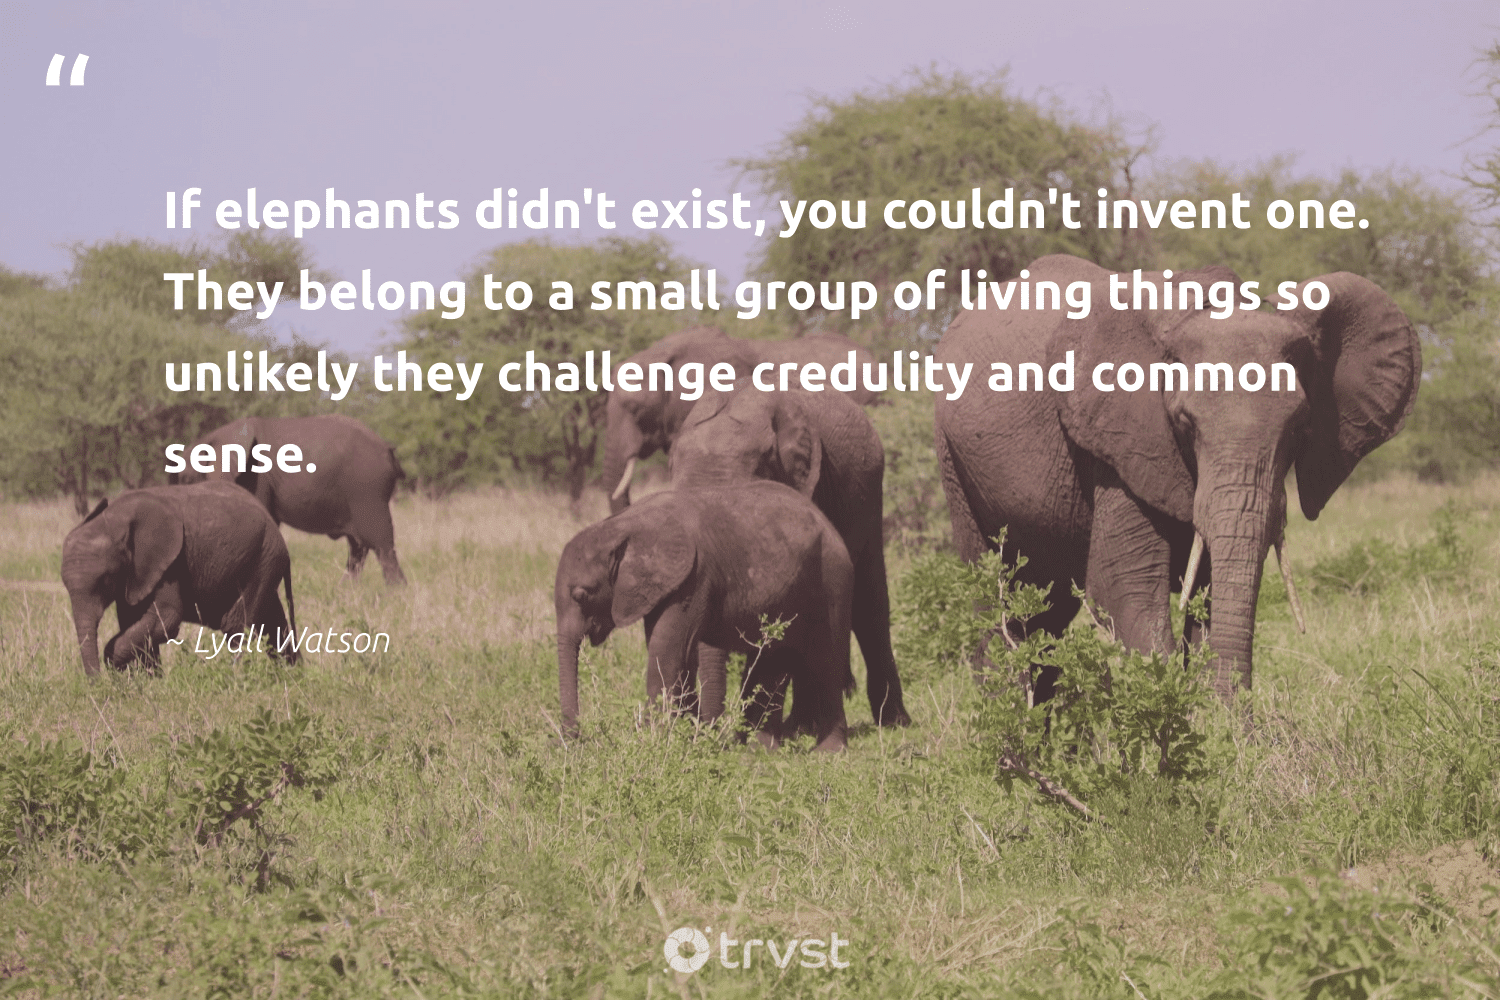 """""""If elephants didn't exist, you couldn't invent one. They belong to a small group of living things so unlikely they challenge credulity and common sense.""""  - Lyall Watson #trvst #quotes #elephants #wildanimals #changetheworld #naturelovers #socialchange #wildlife #collectiveaction #mammals #bethechange #elephant"""